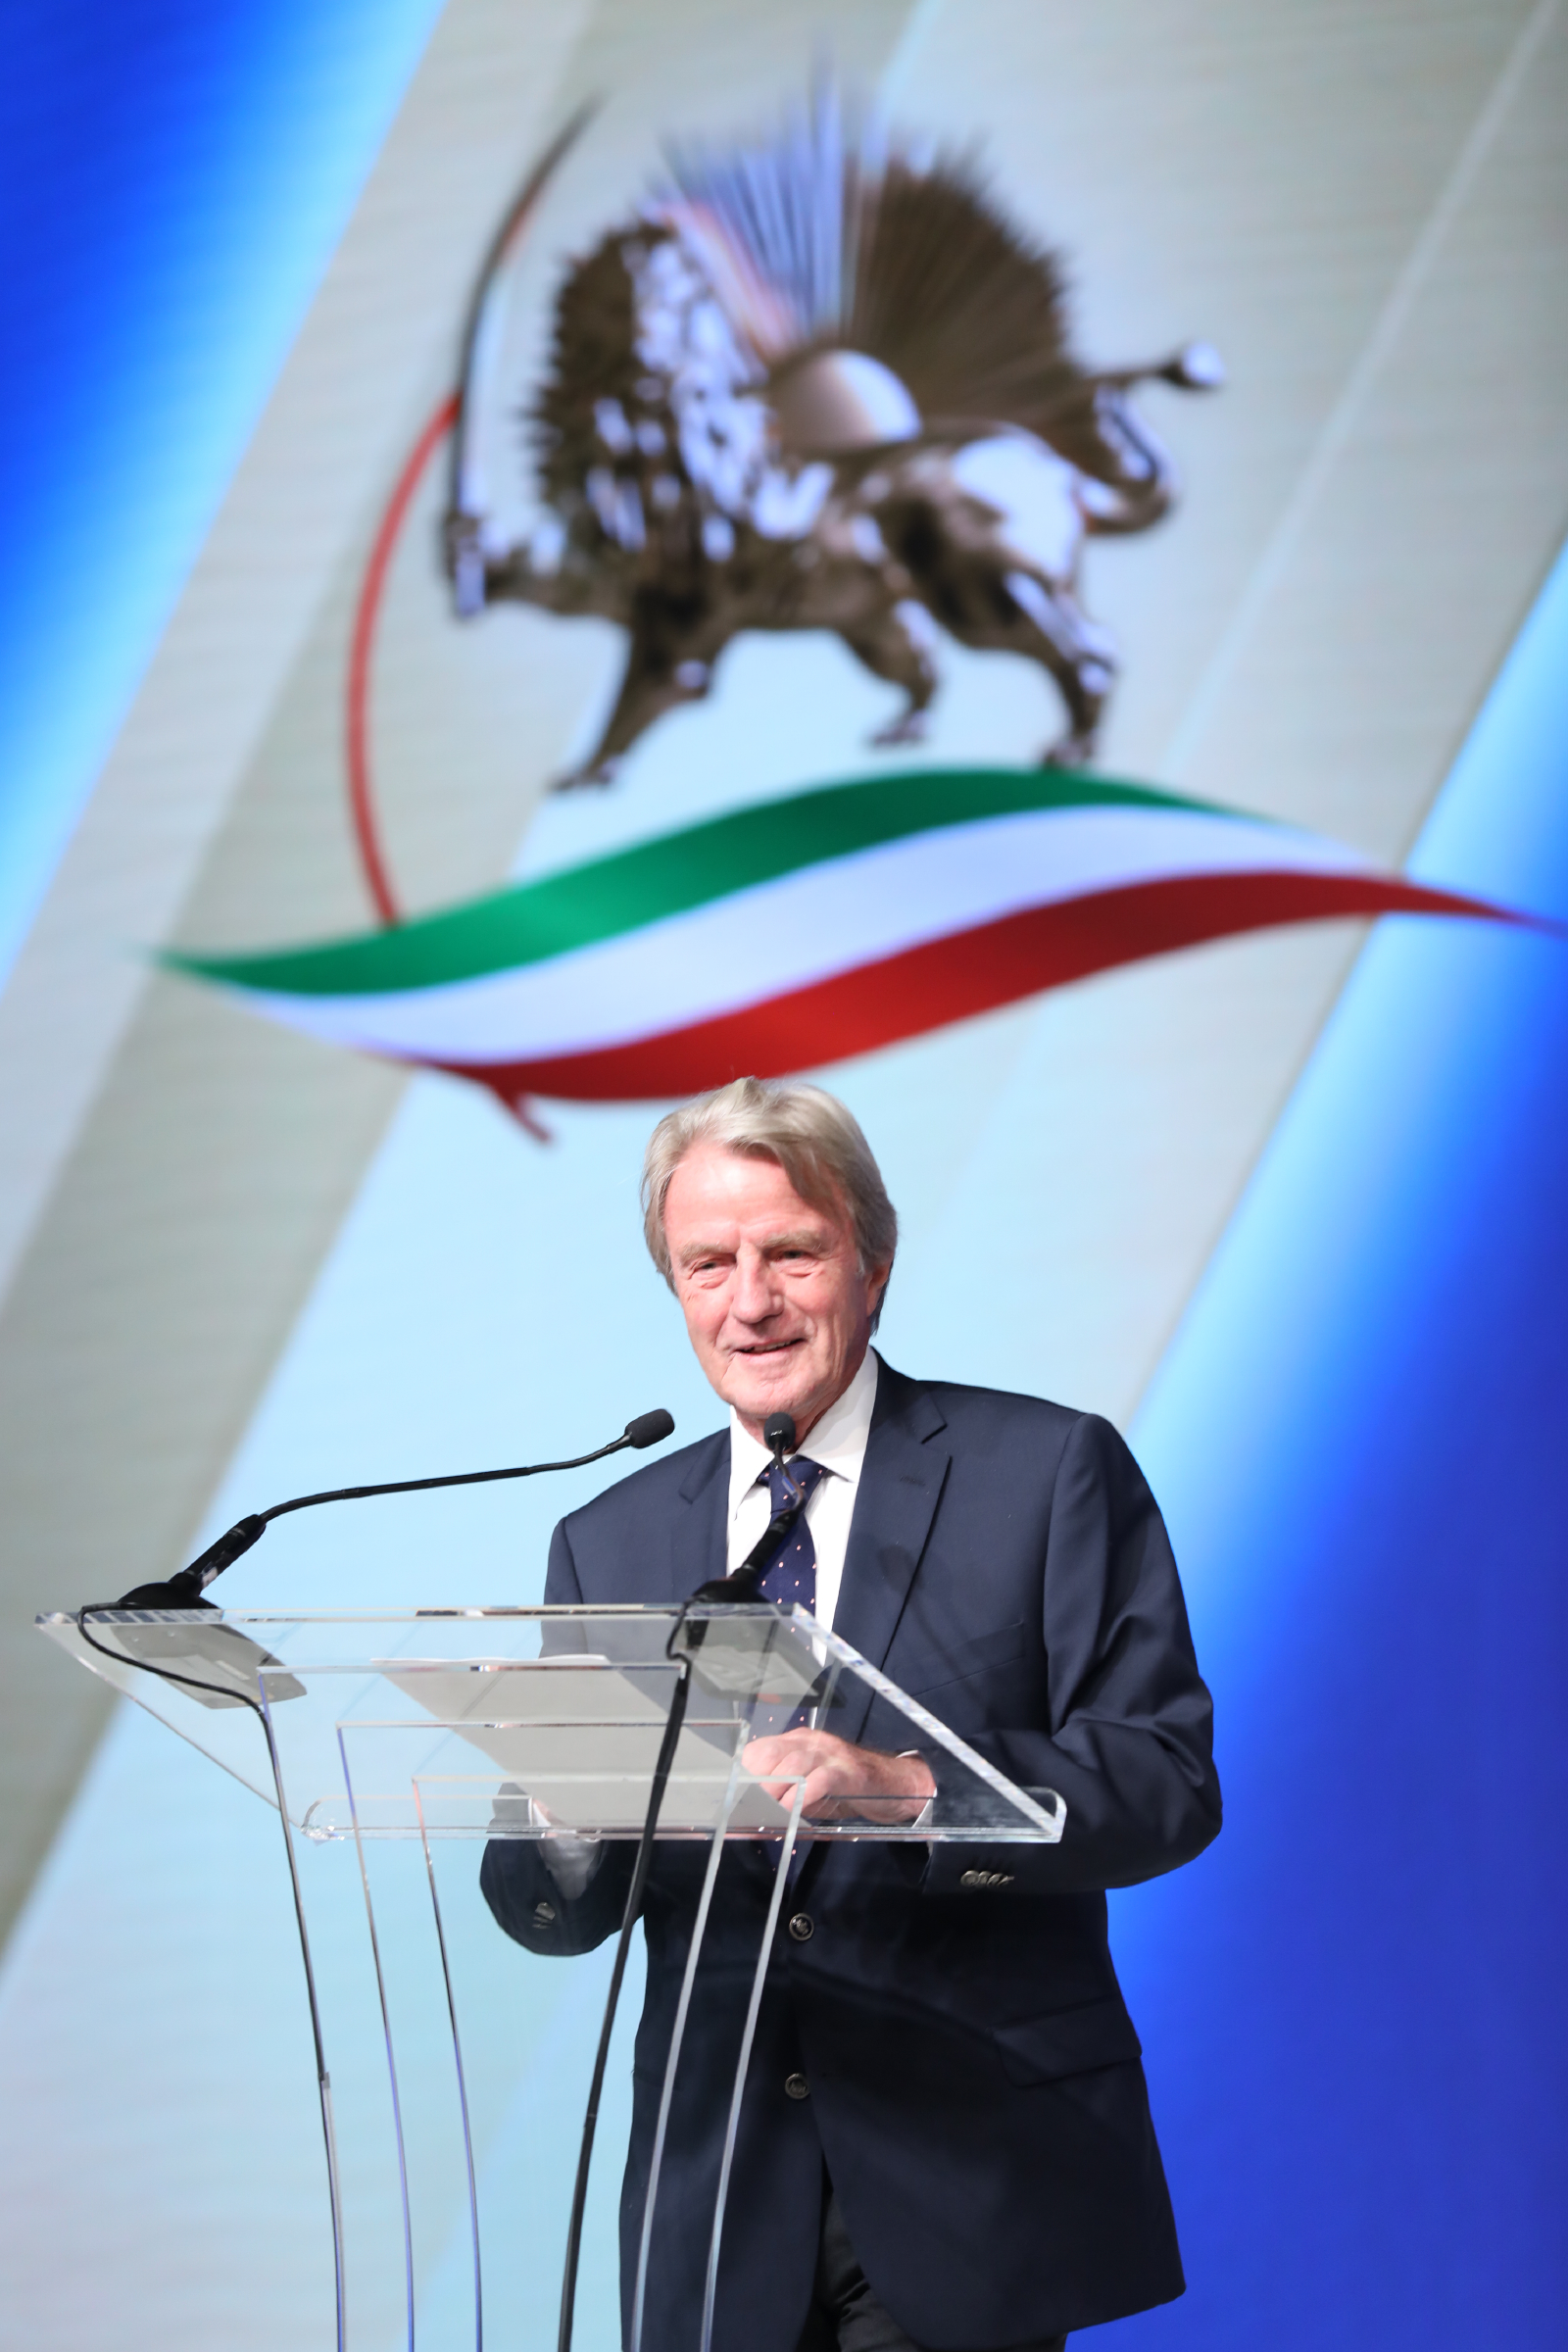 Iranian Resistance Calls For European Action Against Regime